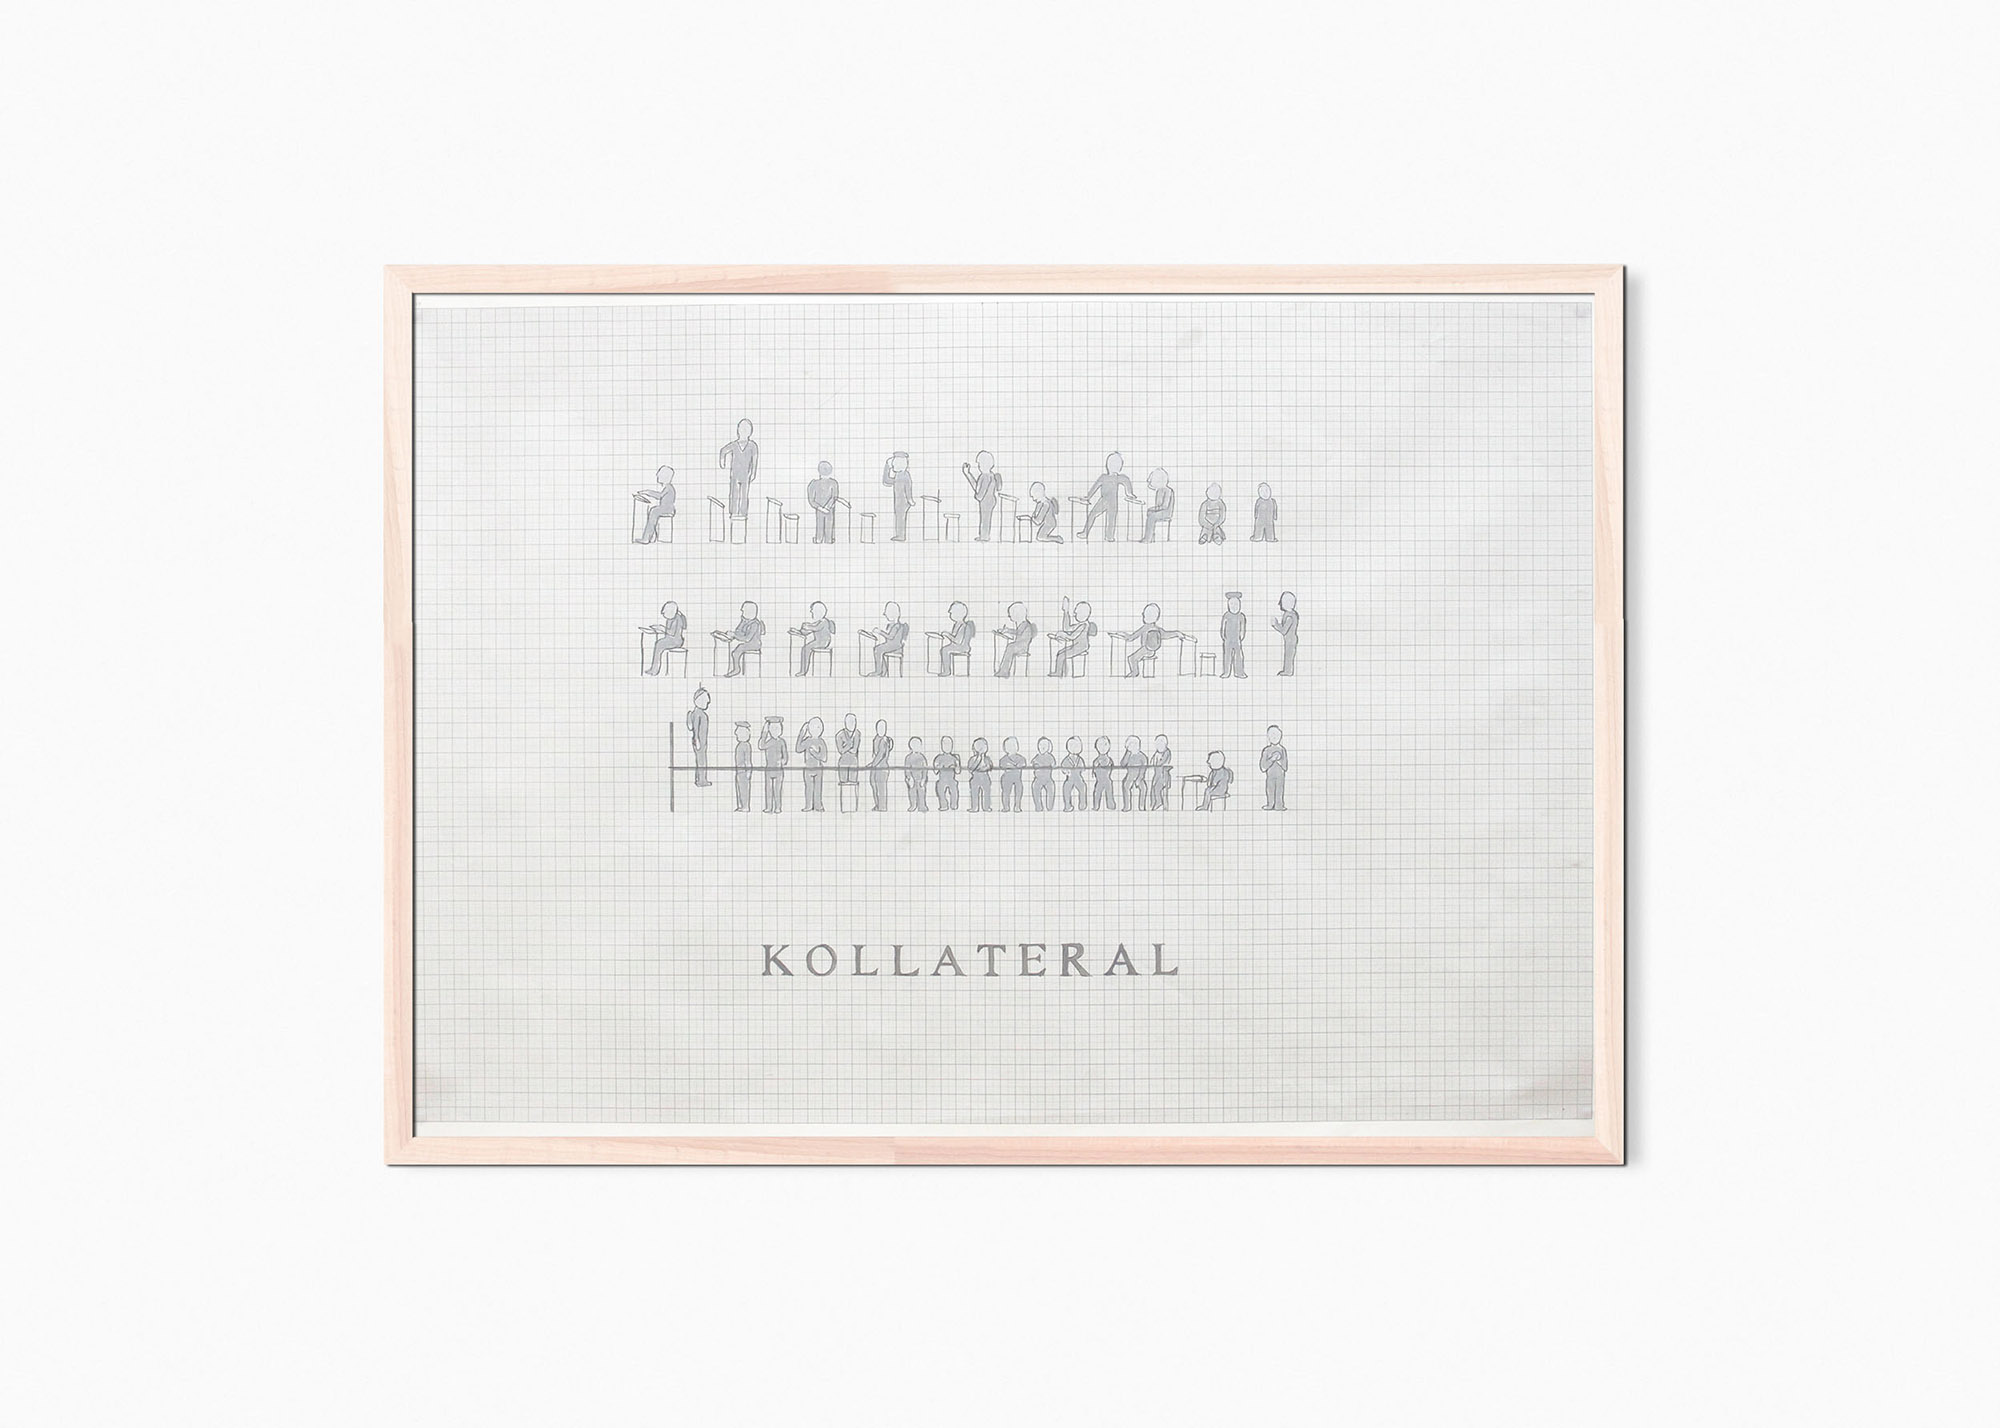 Marcus Kleinfeld, KOLLATERAL, 2011 Acrylic, pencil on graph paper 70 x 100 cm